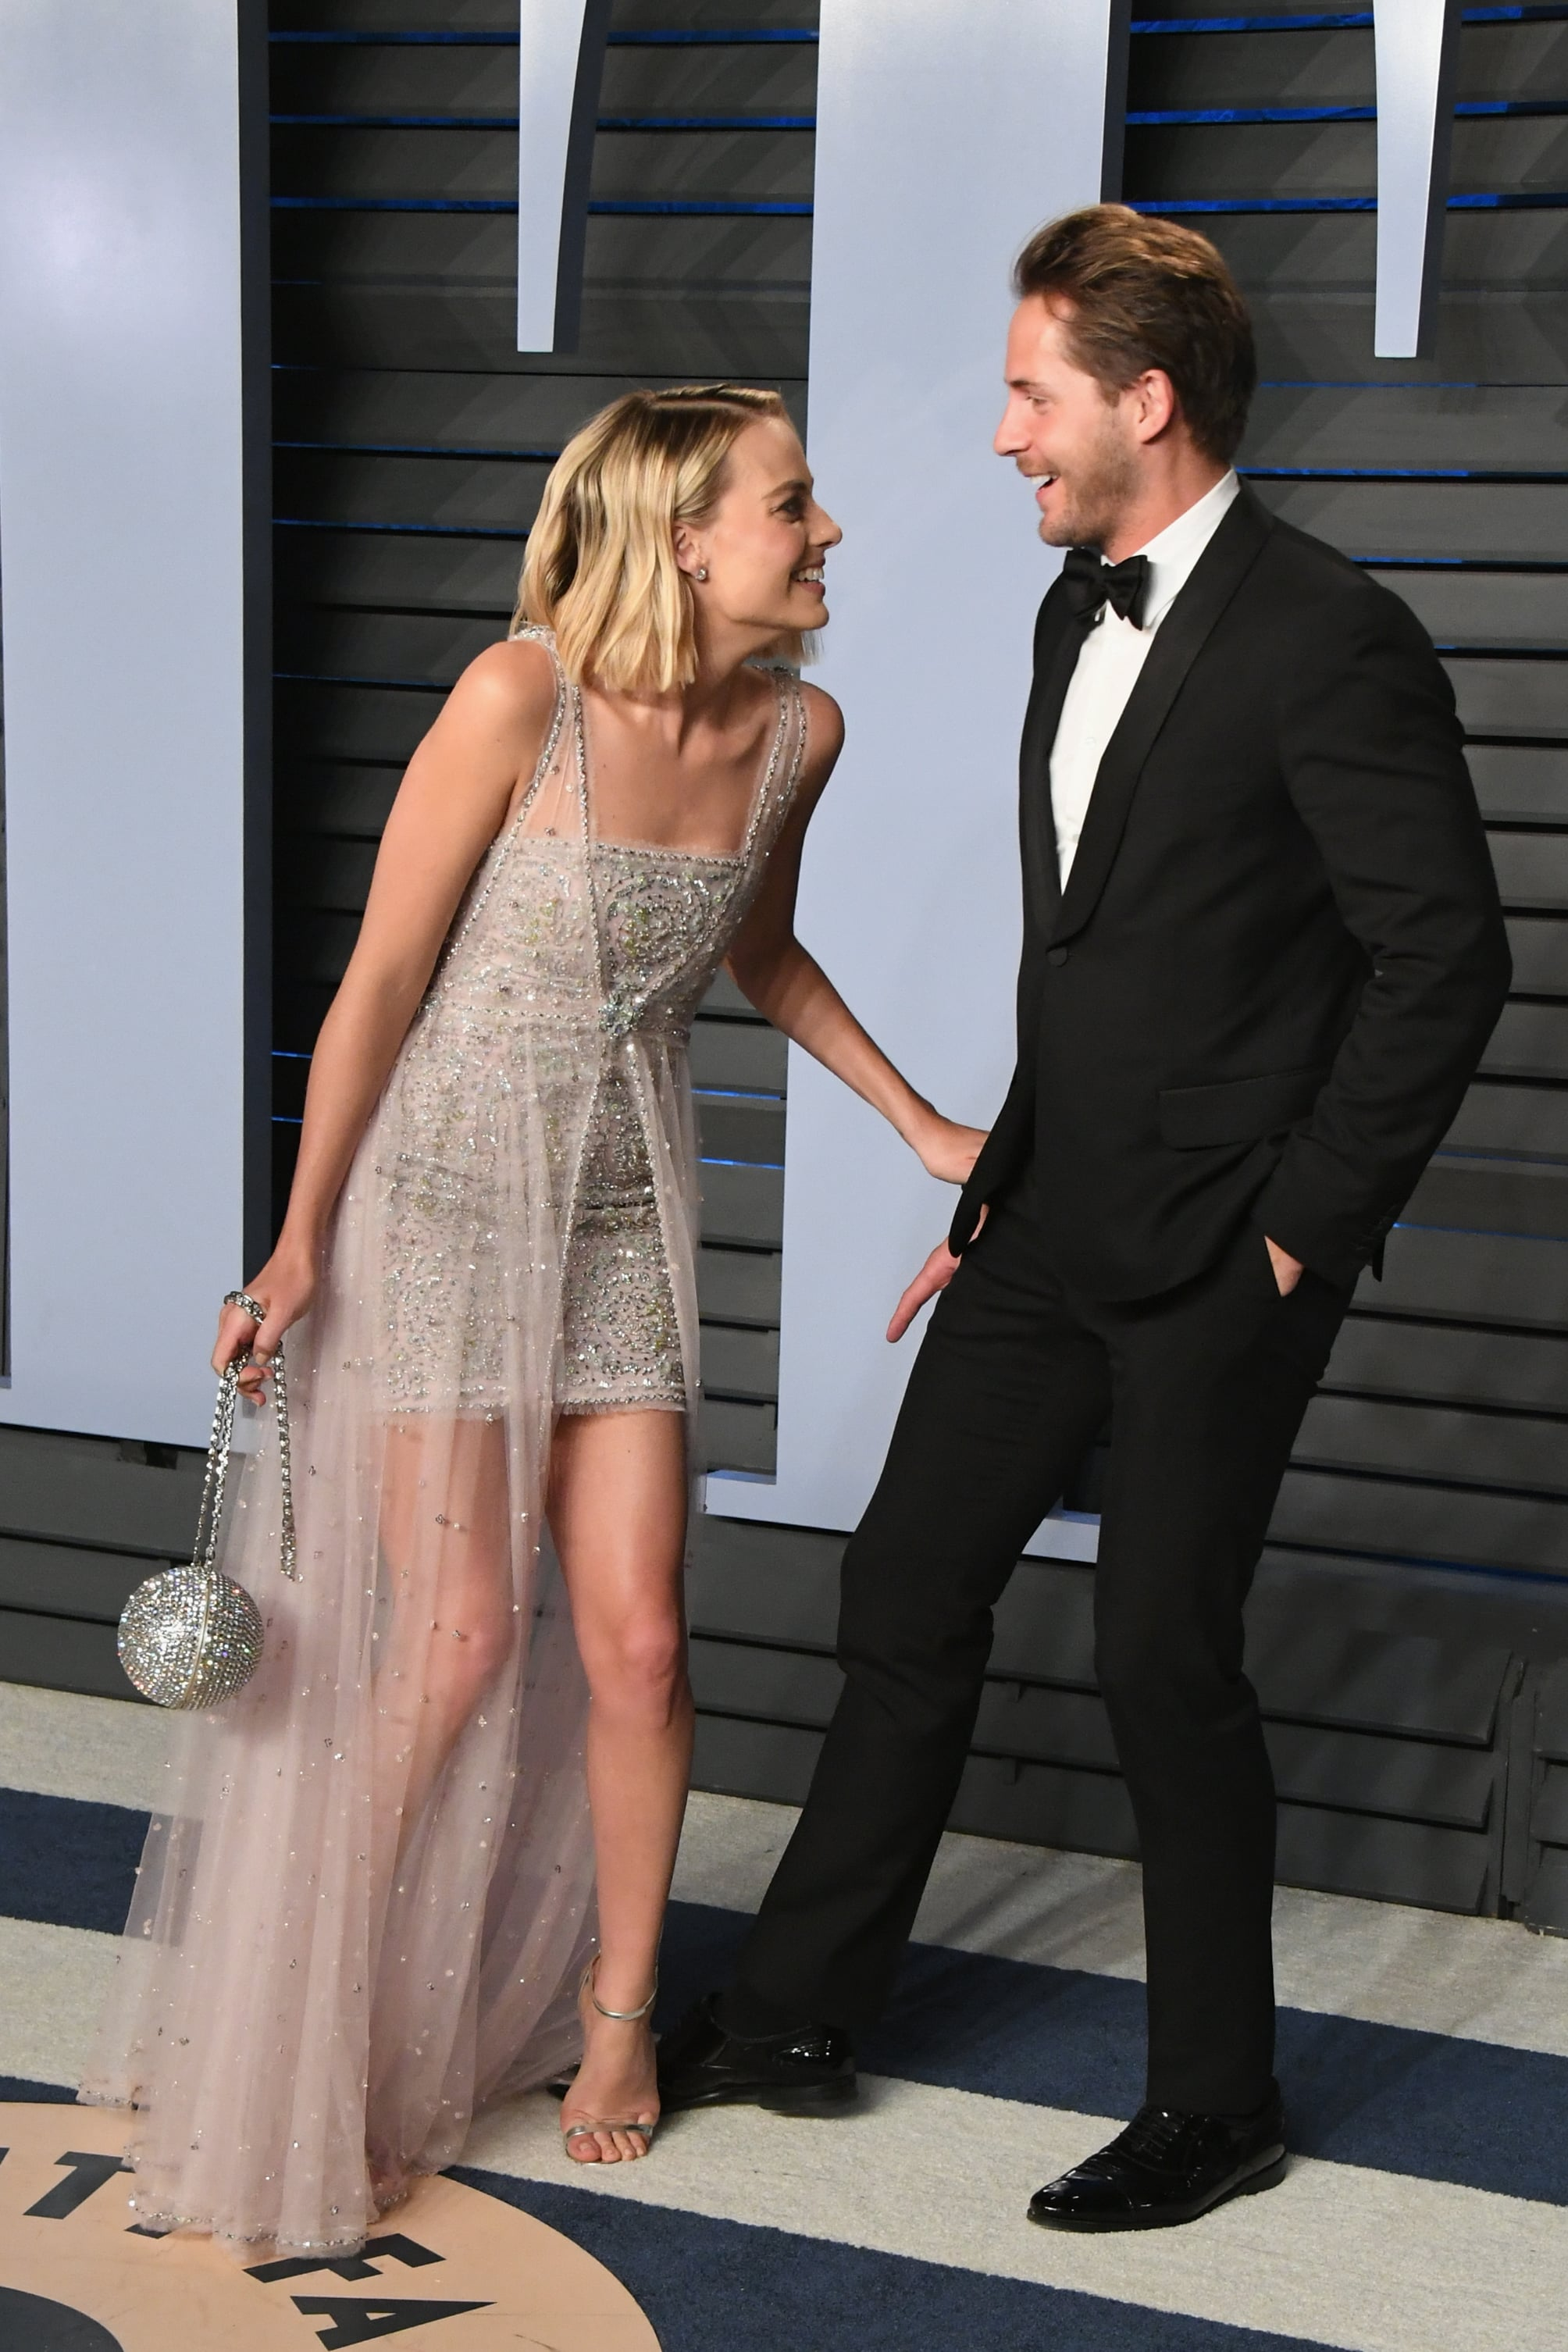 BEVERLY HILLS, CA - MARCH 04: Margot Robbie (L) and Tom Ackerley attend the 2018 Vanity Fair Oscar Party hosted by Radhika Jones at Wallis Annenberg Center for the Performing Arts on March 4, 2018 in Beverly Hills, California.  (Photo by Jon Kopaloff/WireImage)